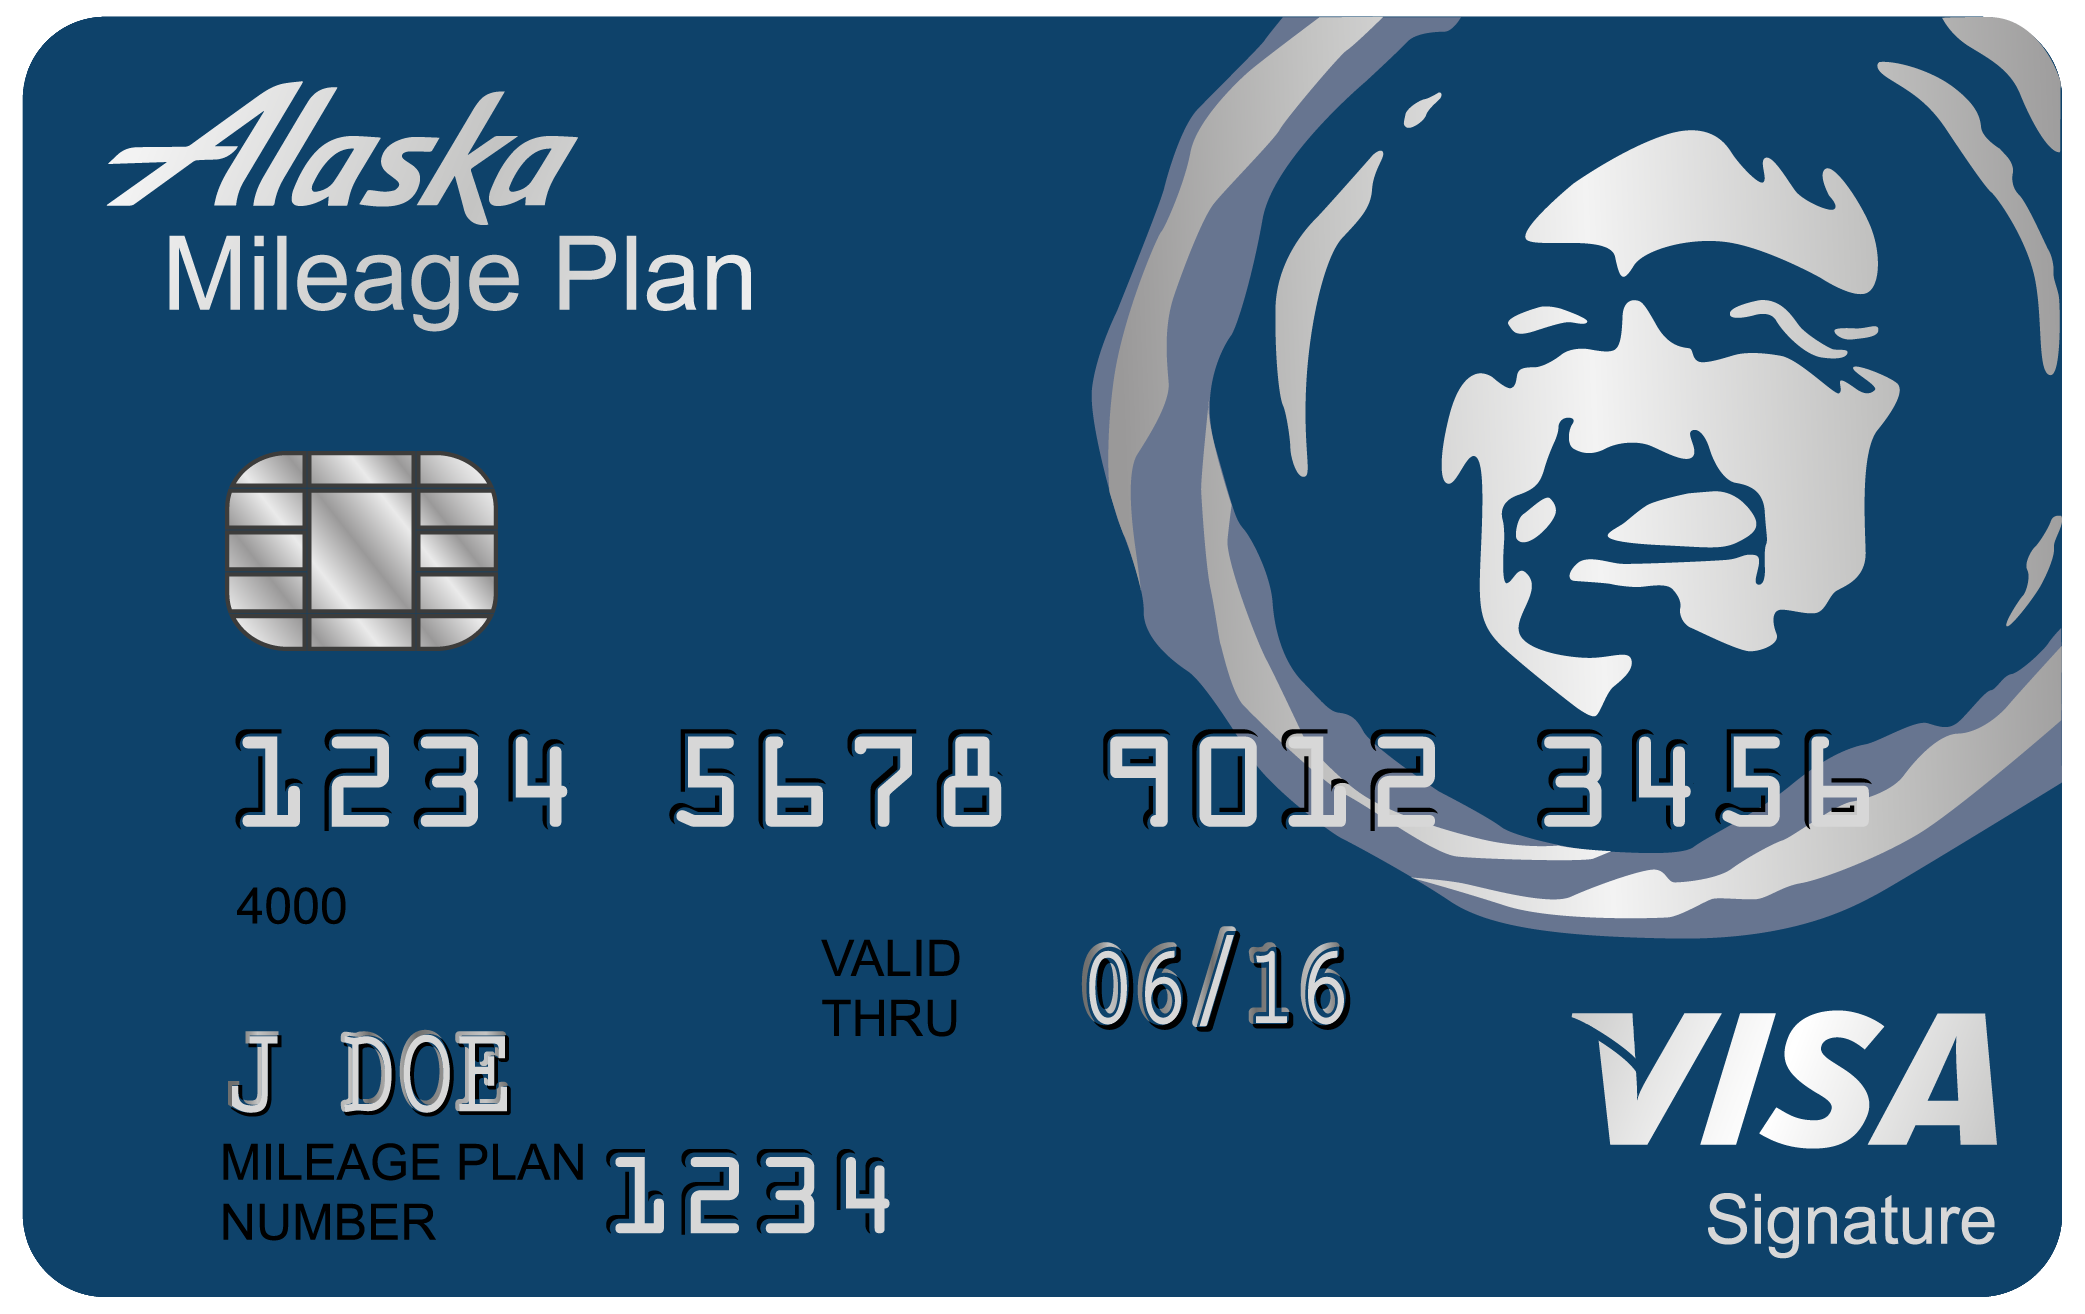 Visa Travel Assistance Signature